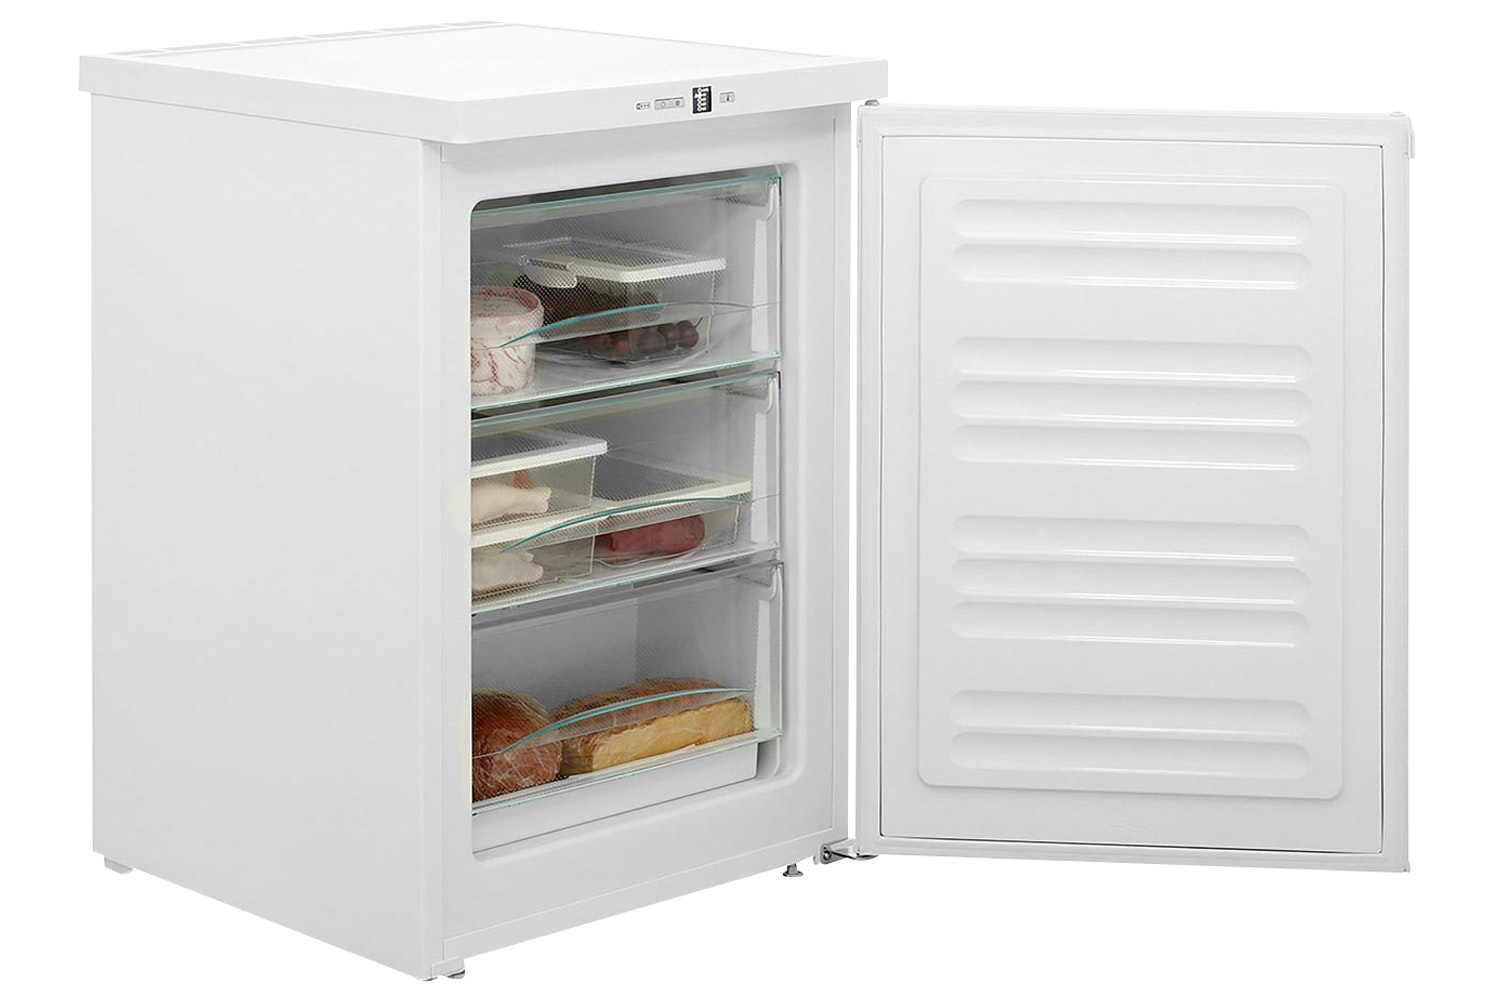 Miele F 12011 S-1  Freestanding freezer   For increased versatility thanks to three freezer drawers and VarioRoom